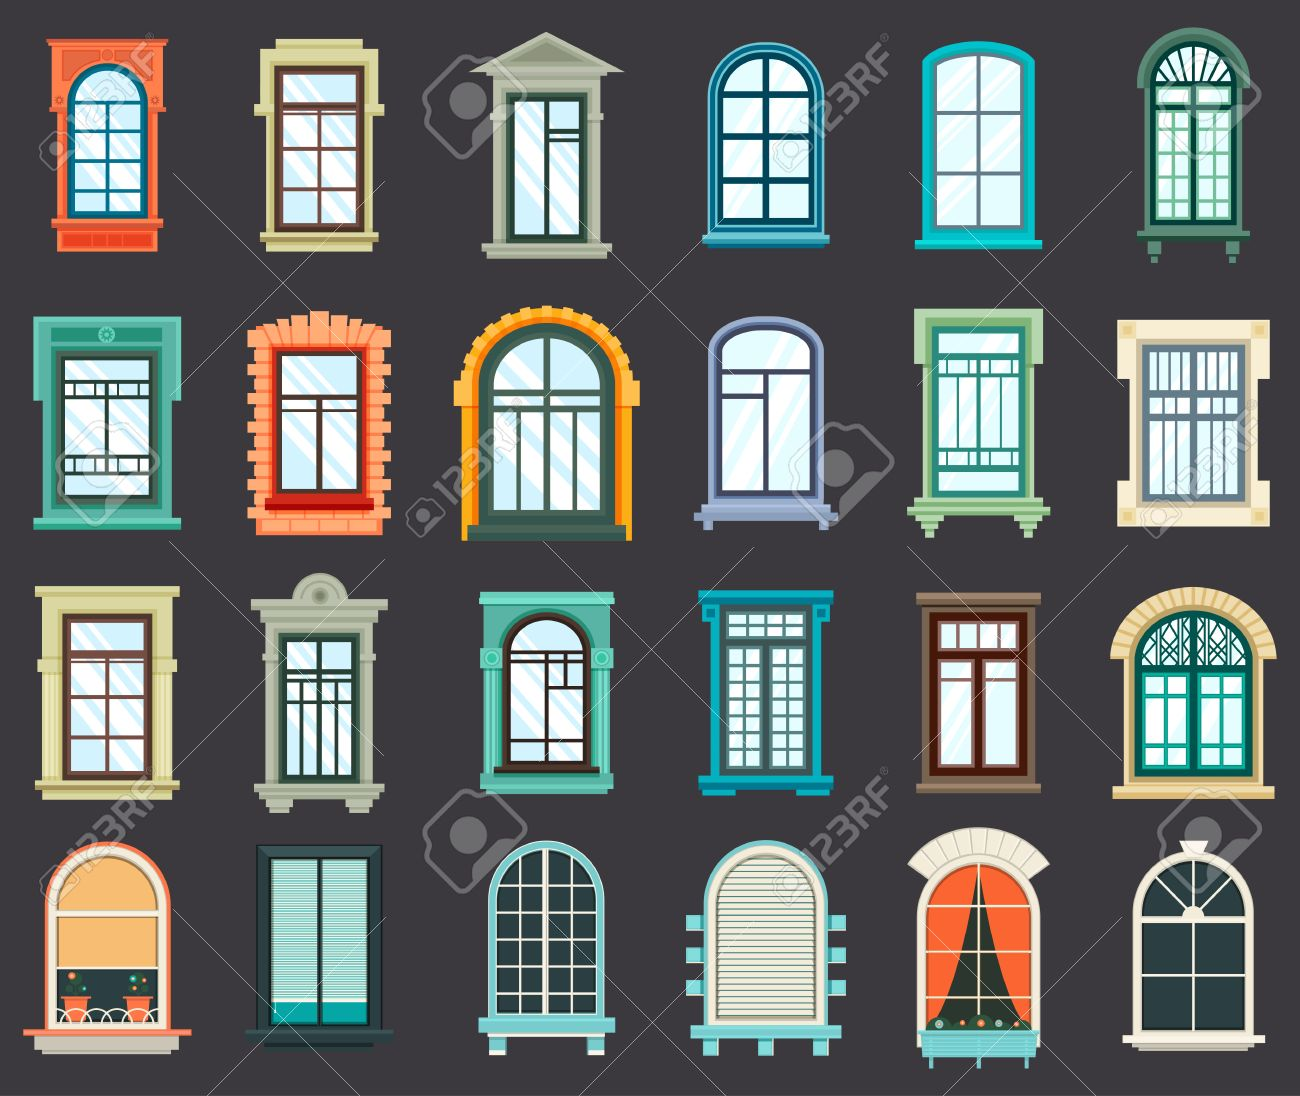 House windows frame design - Old Or Retro Room Or House Wood Window Frames Exterior View House Wall Wooden Or